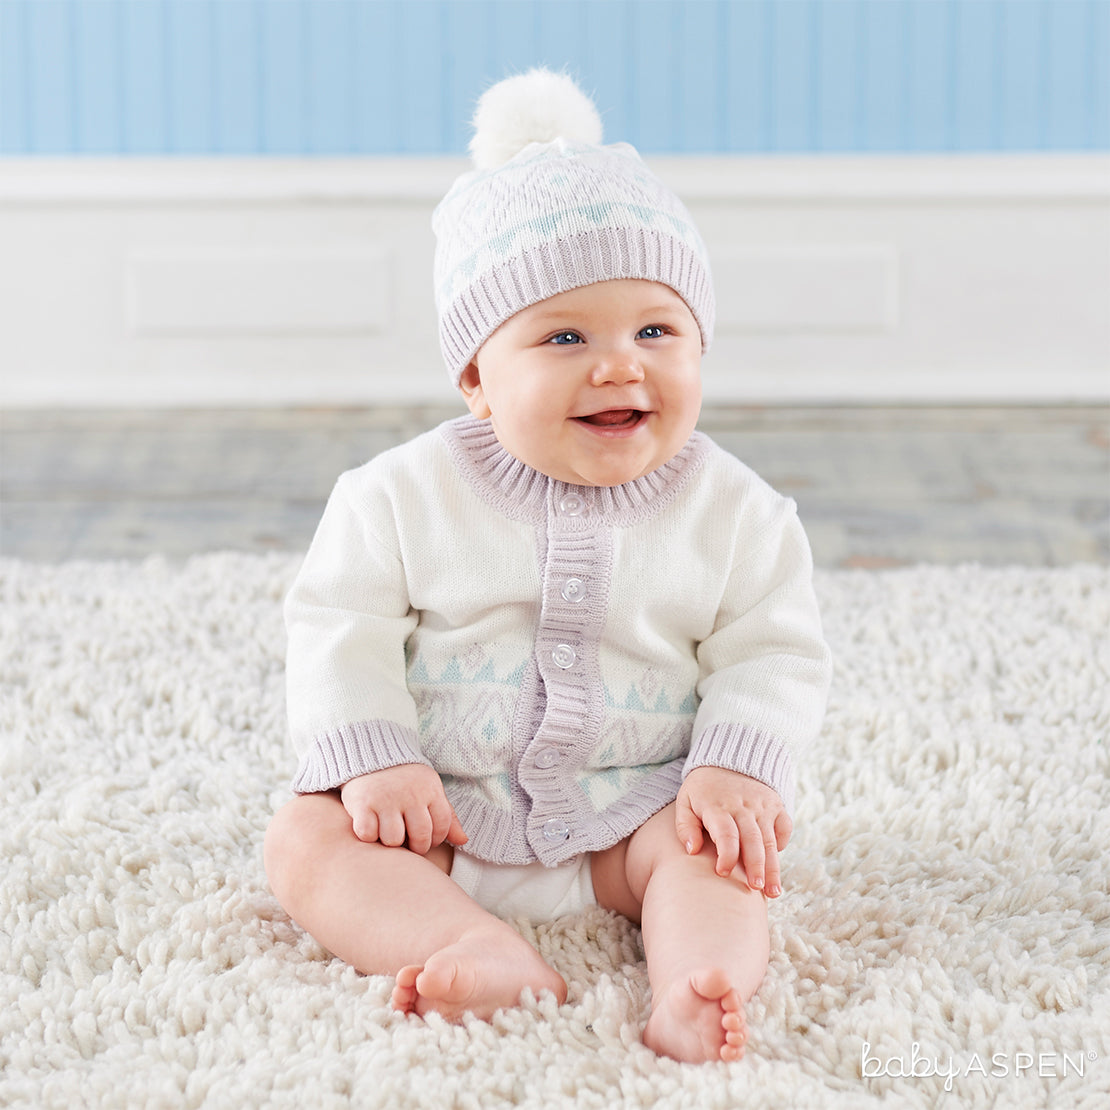 White Fair Isle Cardigan and Pom Pom Hat | 9 Ideas to Keep Baby Warm This Winter | Baby Aspen